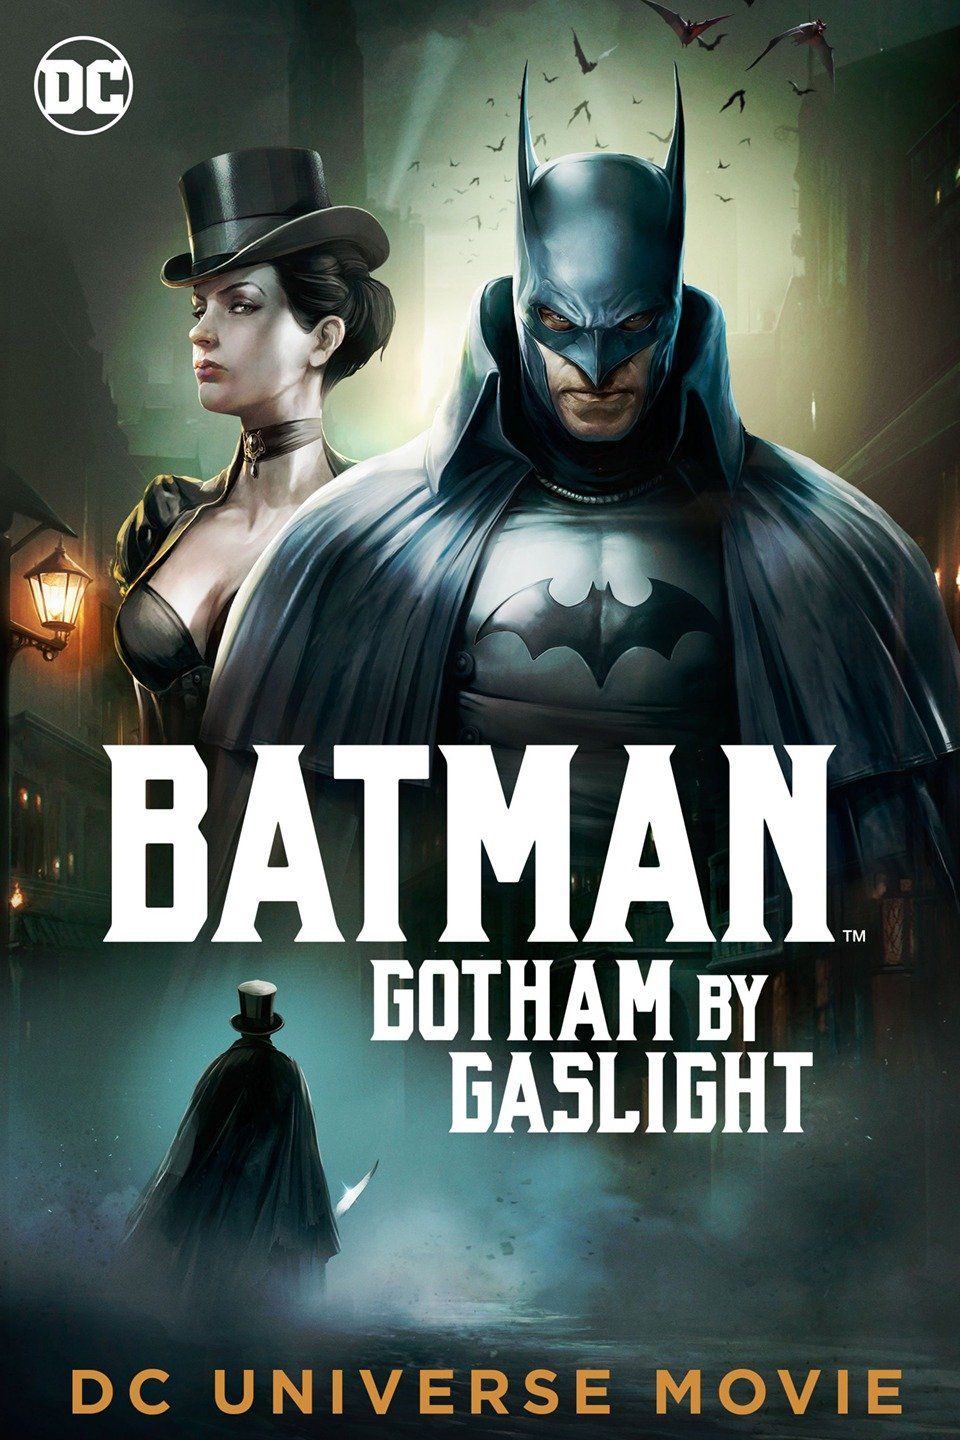 Assistir Batman Gotham by Gaslight